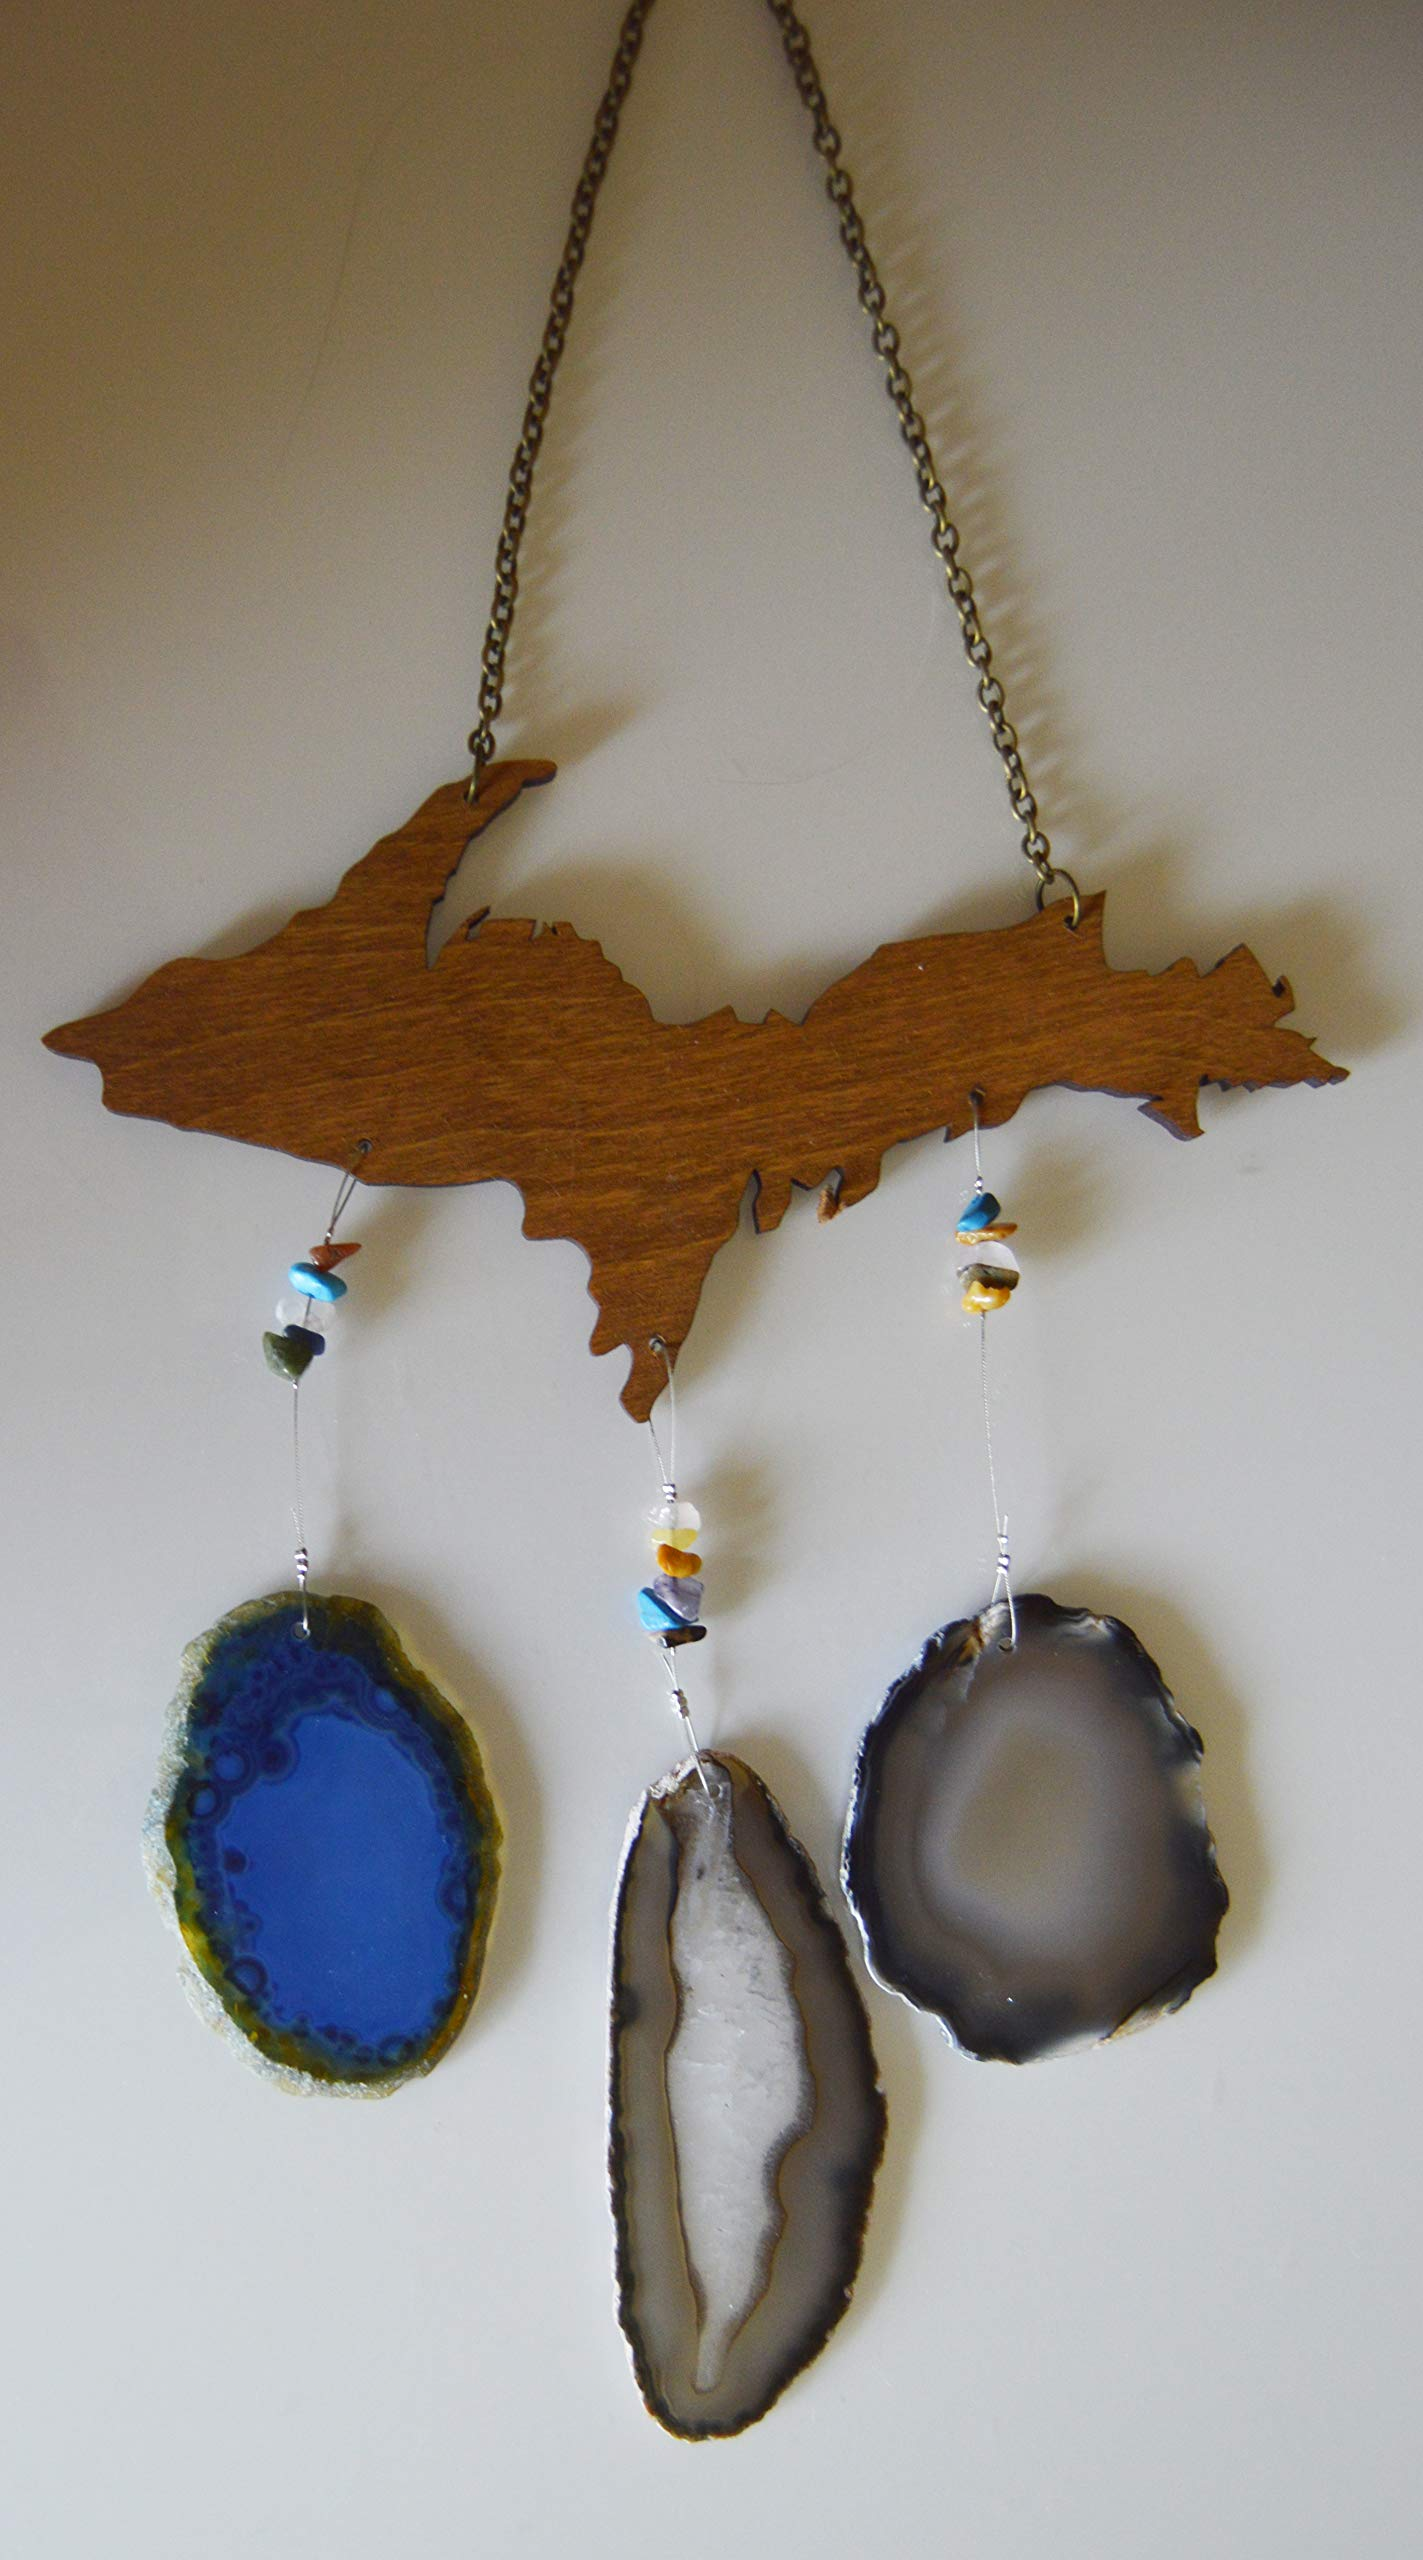 wind chime Blue and Gray Agate slice geode windchime Michigan Upper peninsula U P wood stone sun catcher wind chime mobile window decor hanging by Riverstone Gallery (Image #1)